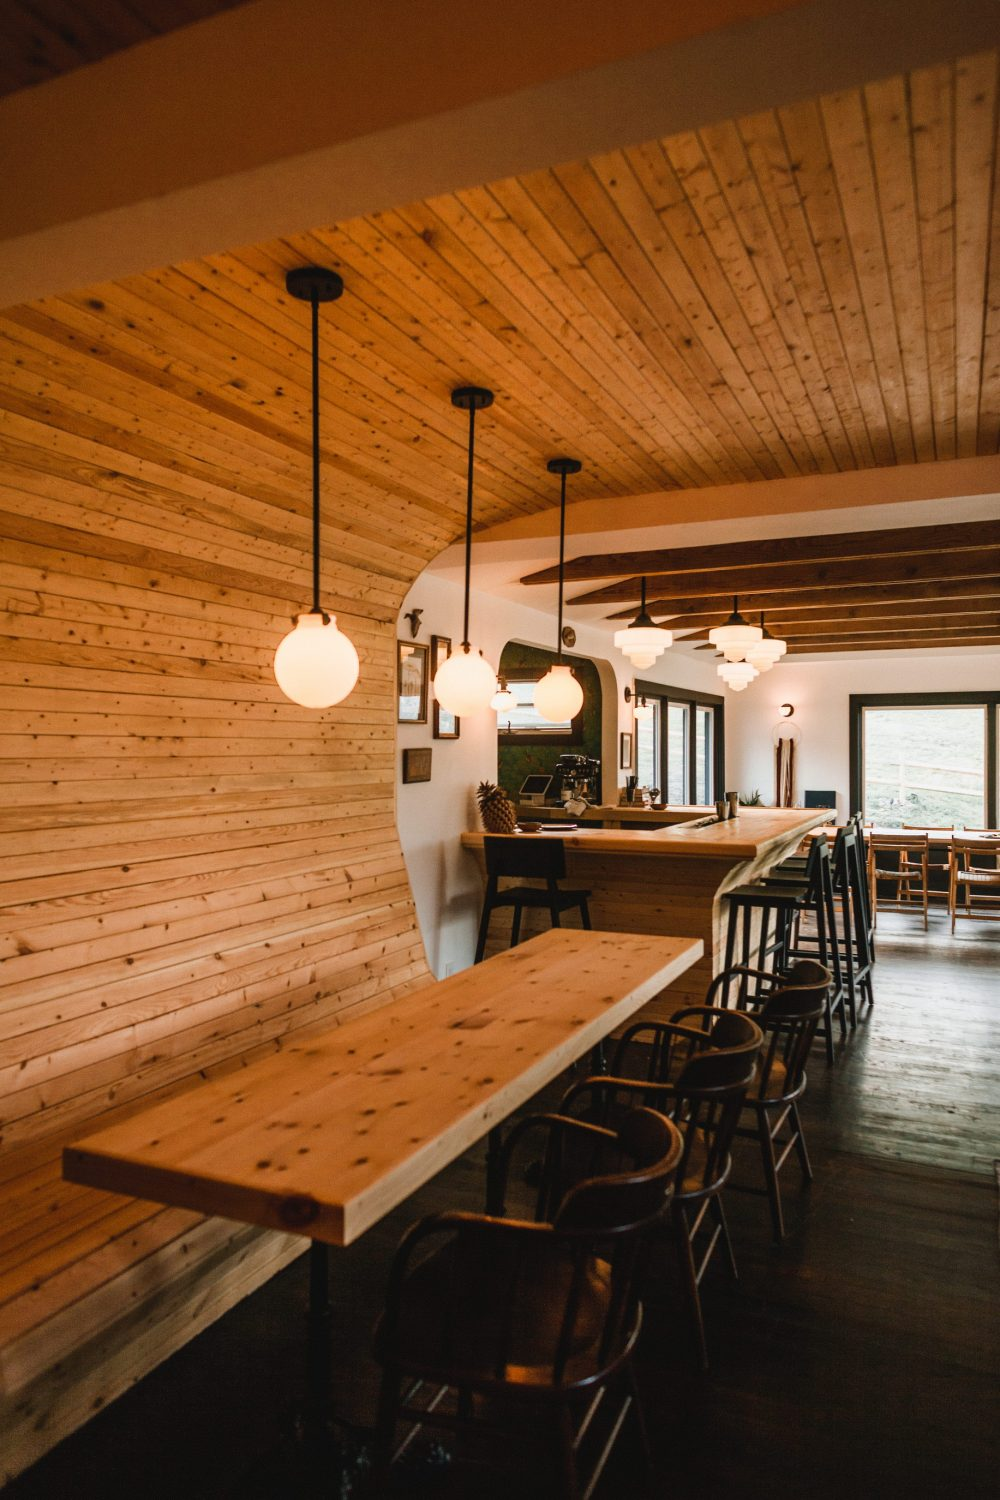 Eastwind Hotel & Bar   Glamping in the Catskills